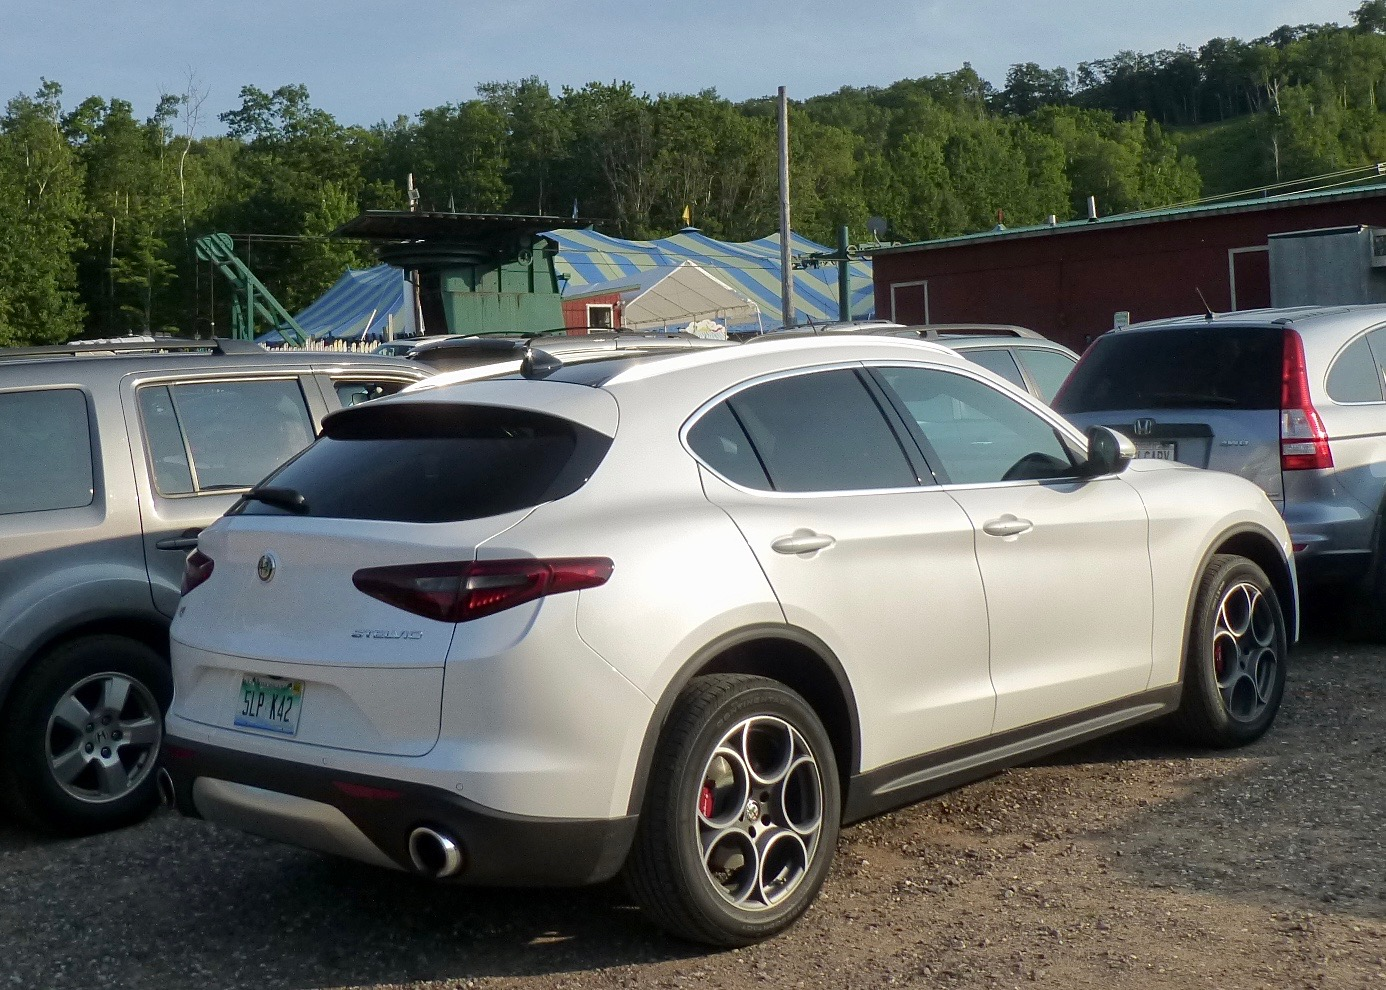 Alfa Romeo Stelvio Is Suv For S Curves New Car Picks Magnesium Wheels Ti Lusso Fit Easily Amid Normal Vehicles At The Big Top Chautauqua Parking Lot